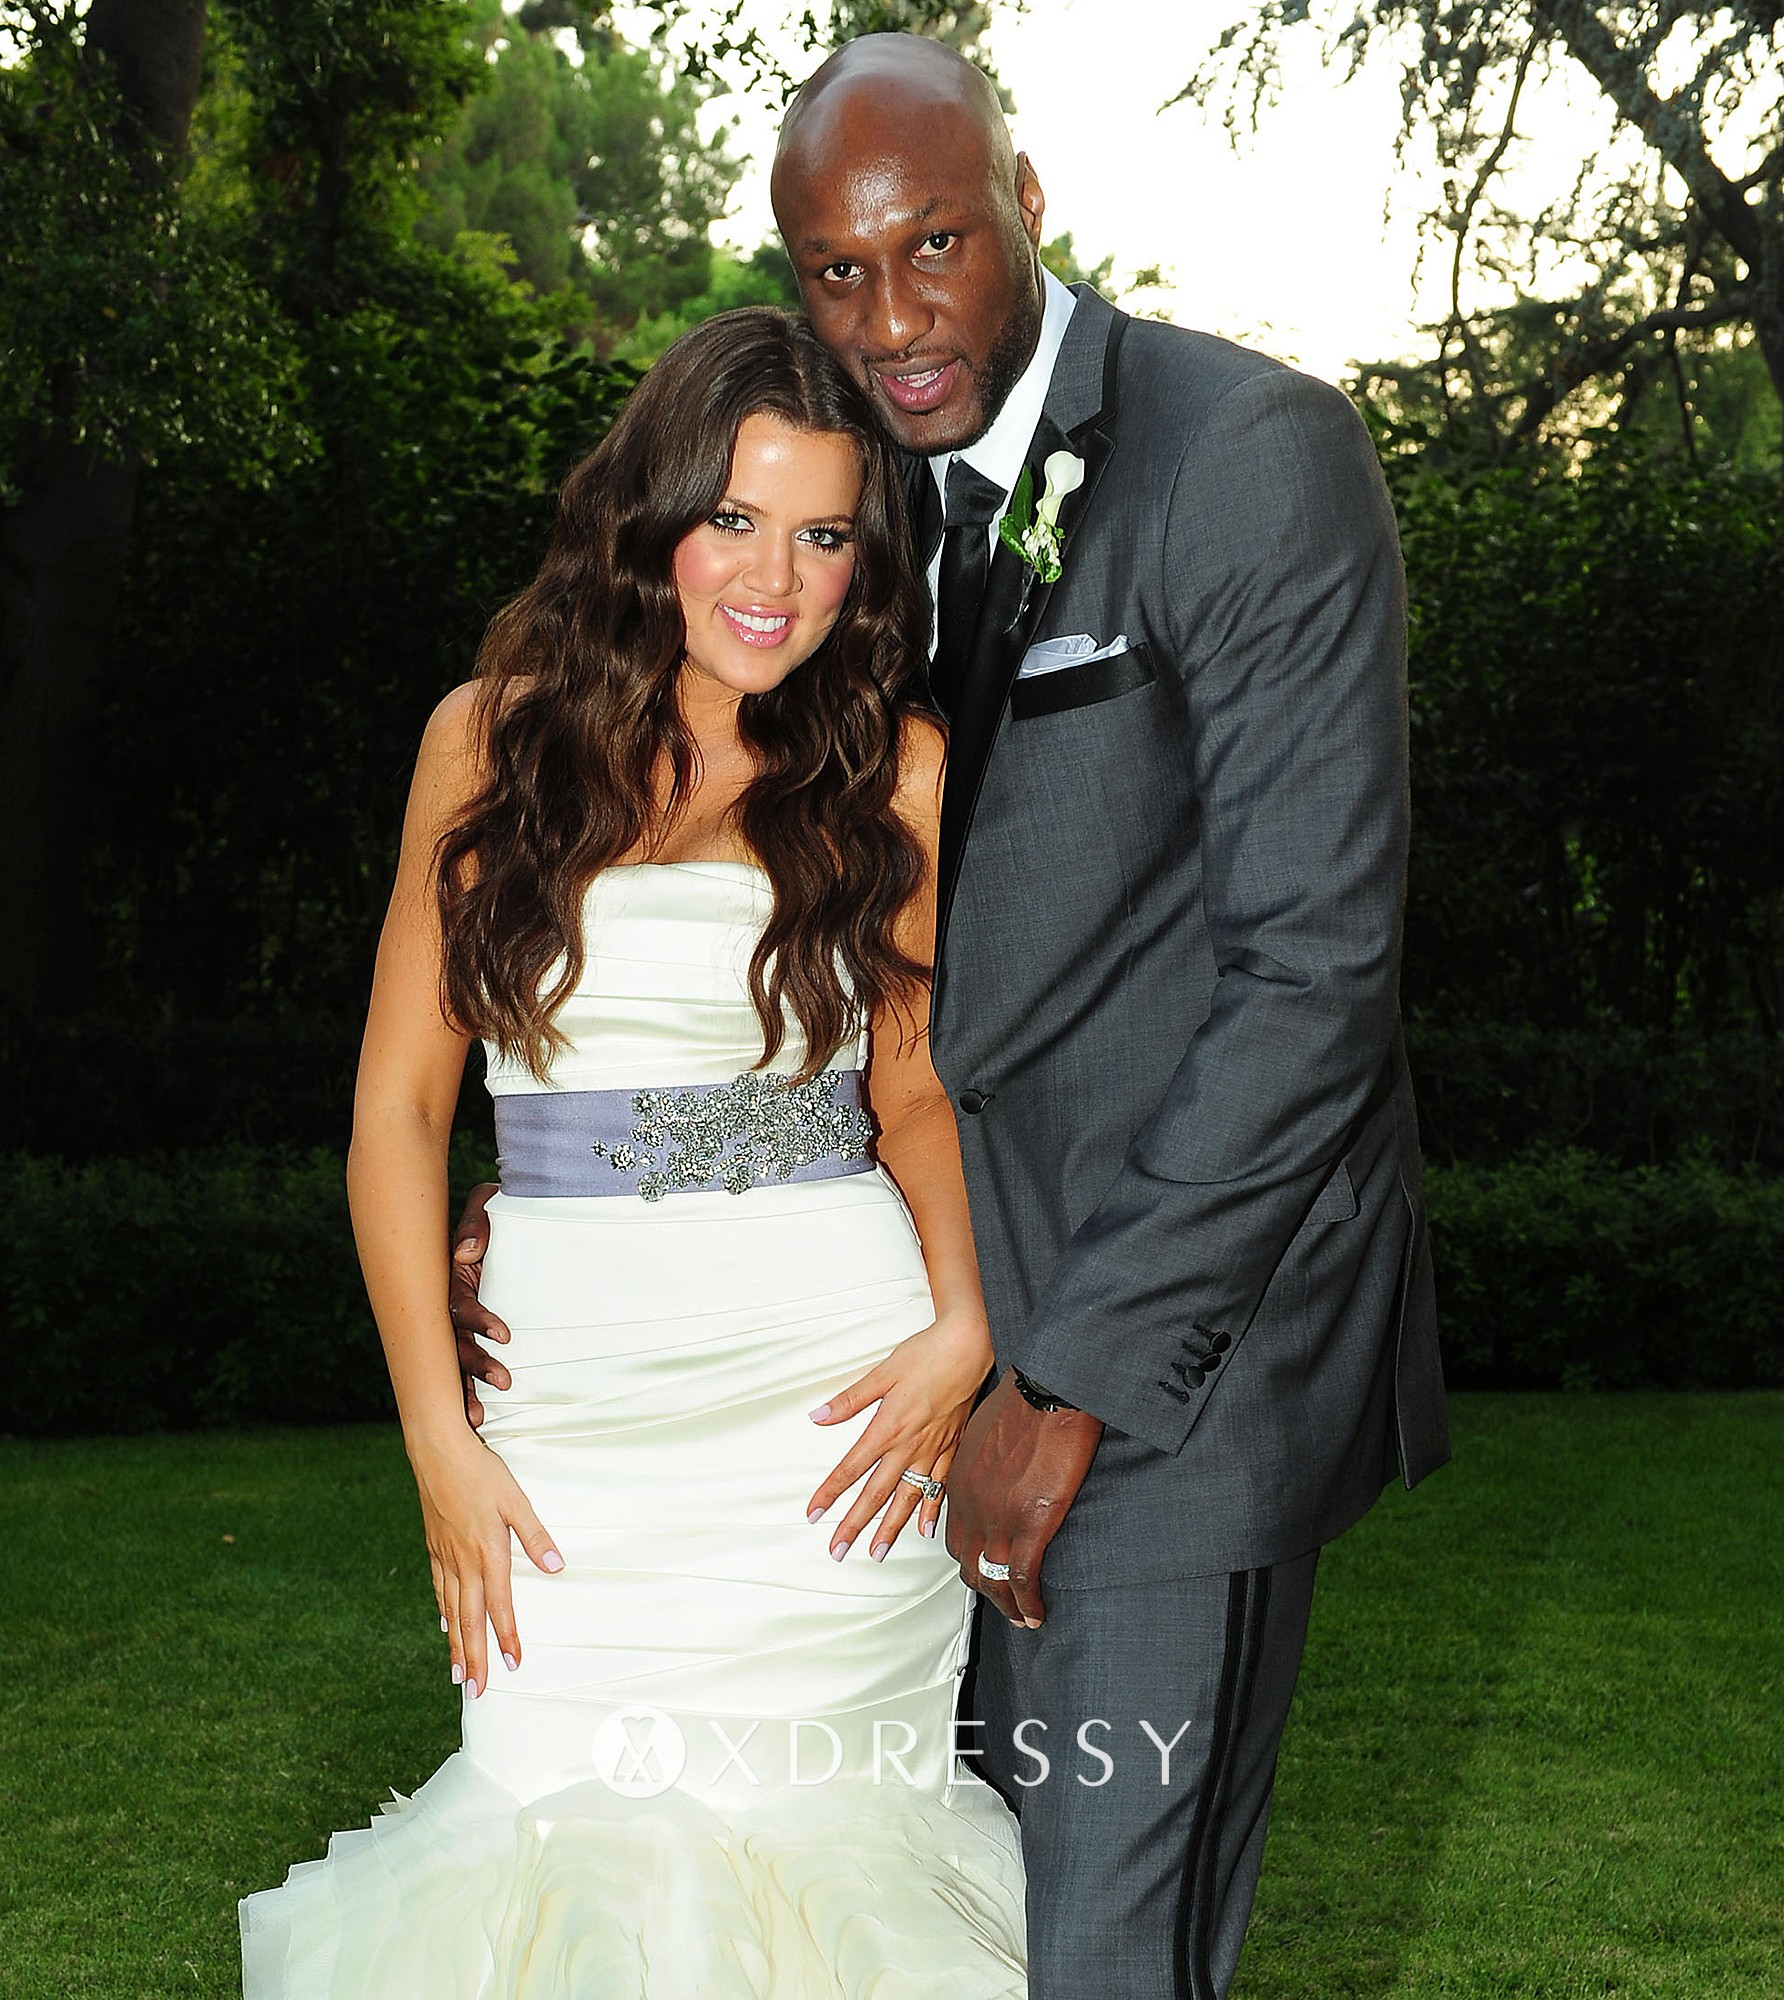 Khloe Kardashian Wedding Gown: Khloe Kardashian Ivory Flanged Mermaid Bridal Gown